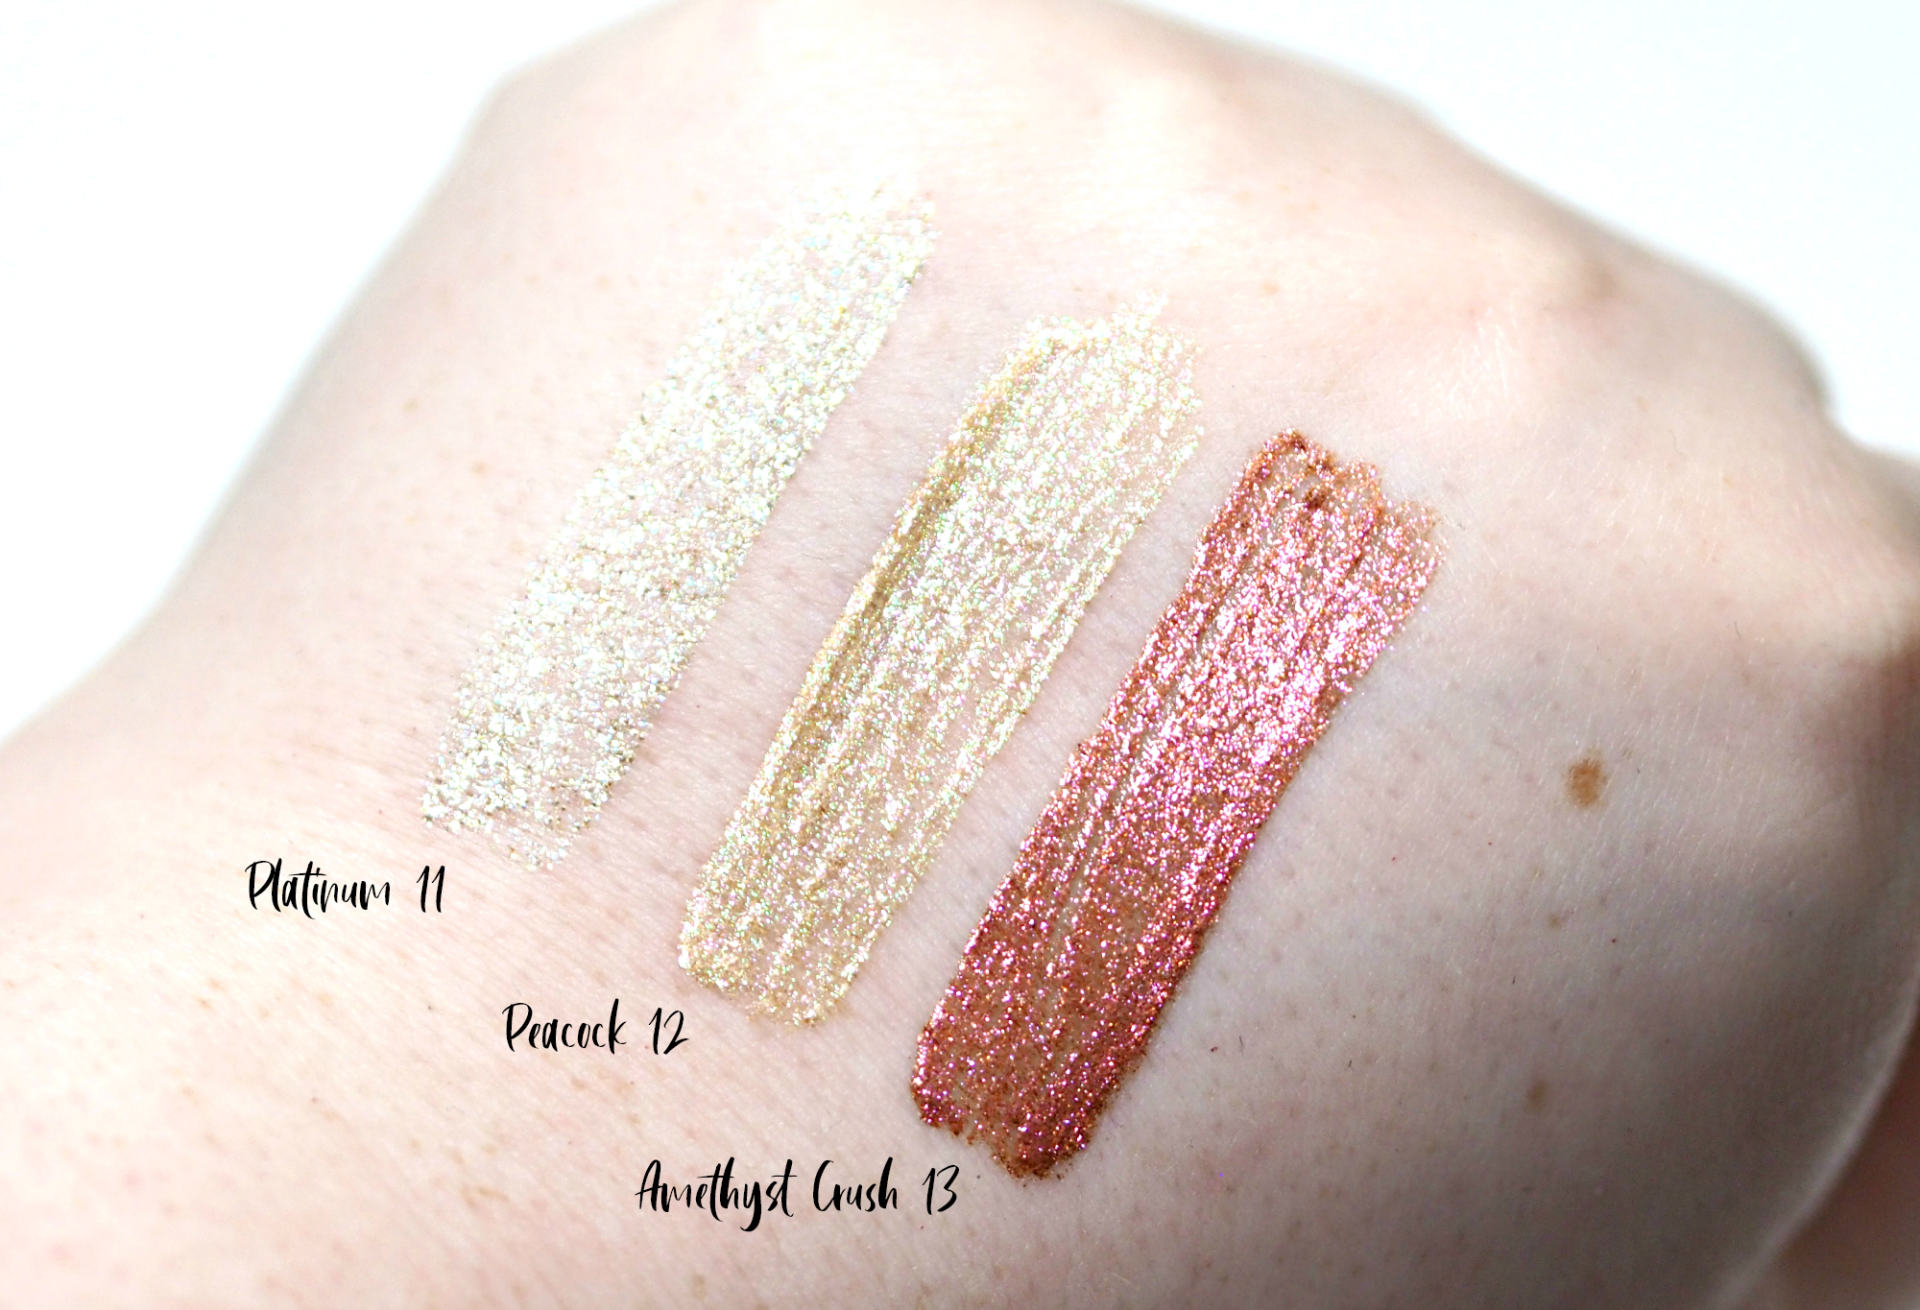 Swatches of the Platinum, Peacock and Amethyst Crush shades from AliExpress